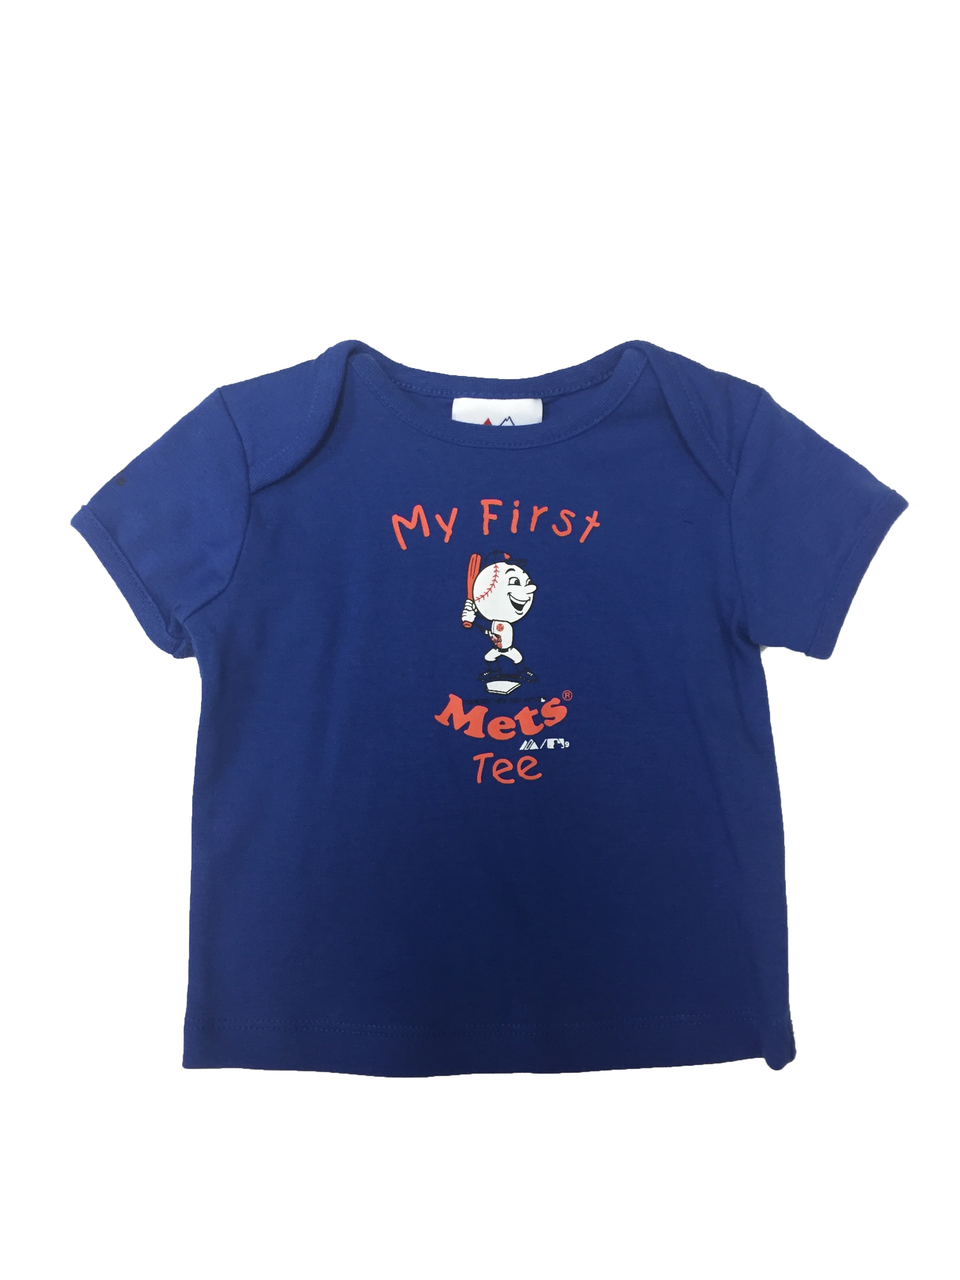 My First Mets Baby Tee  photo